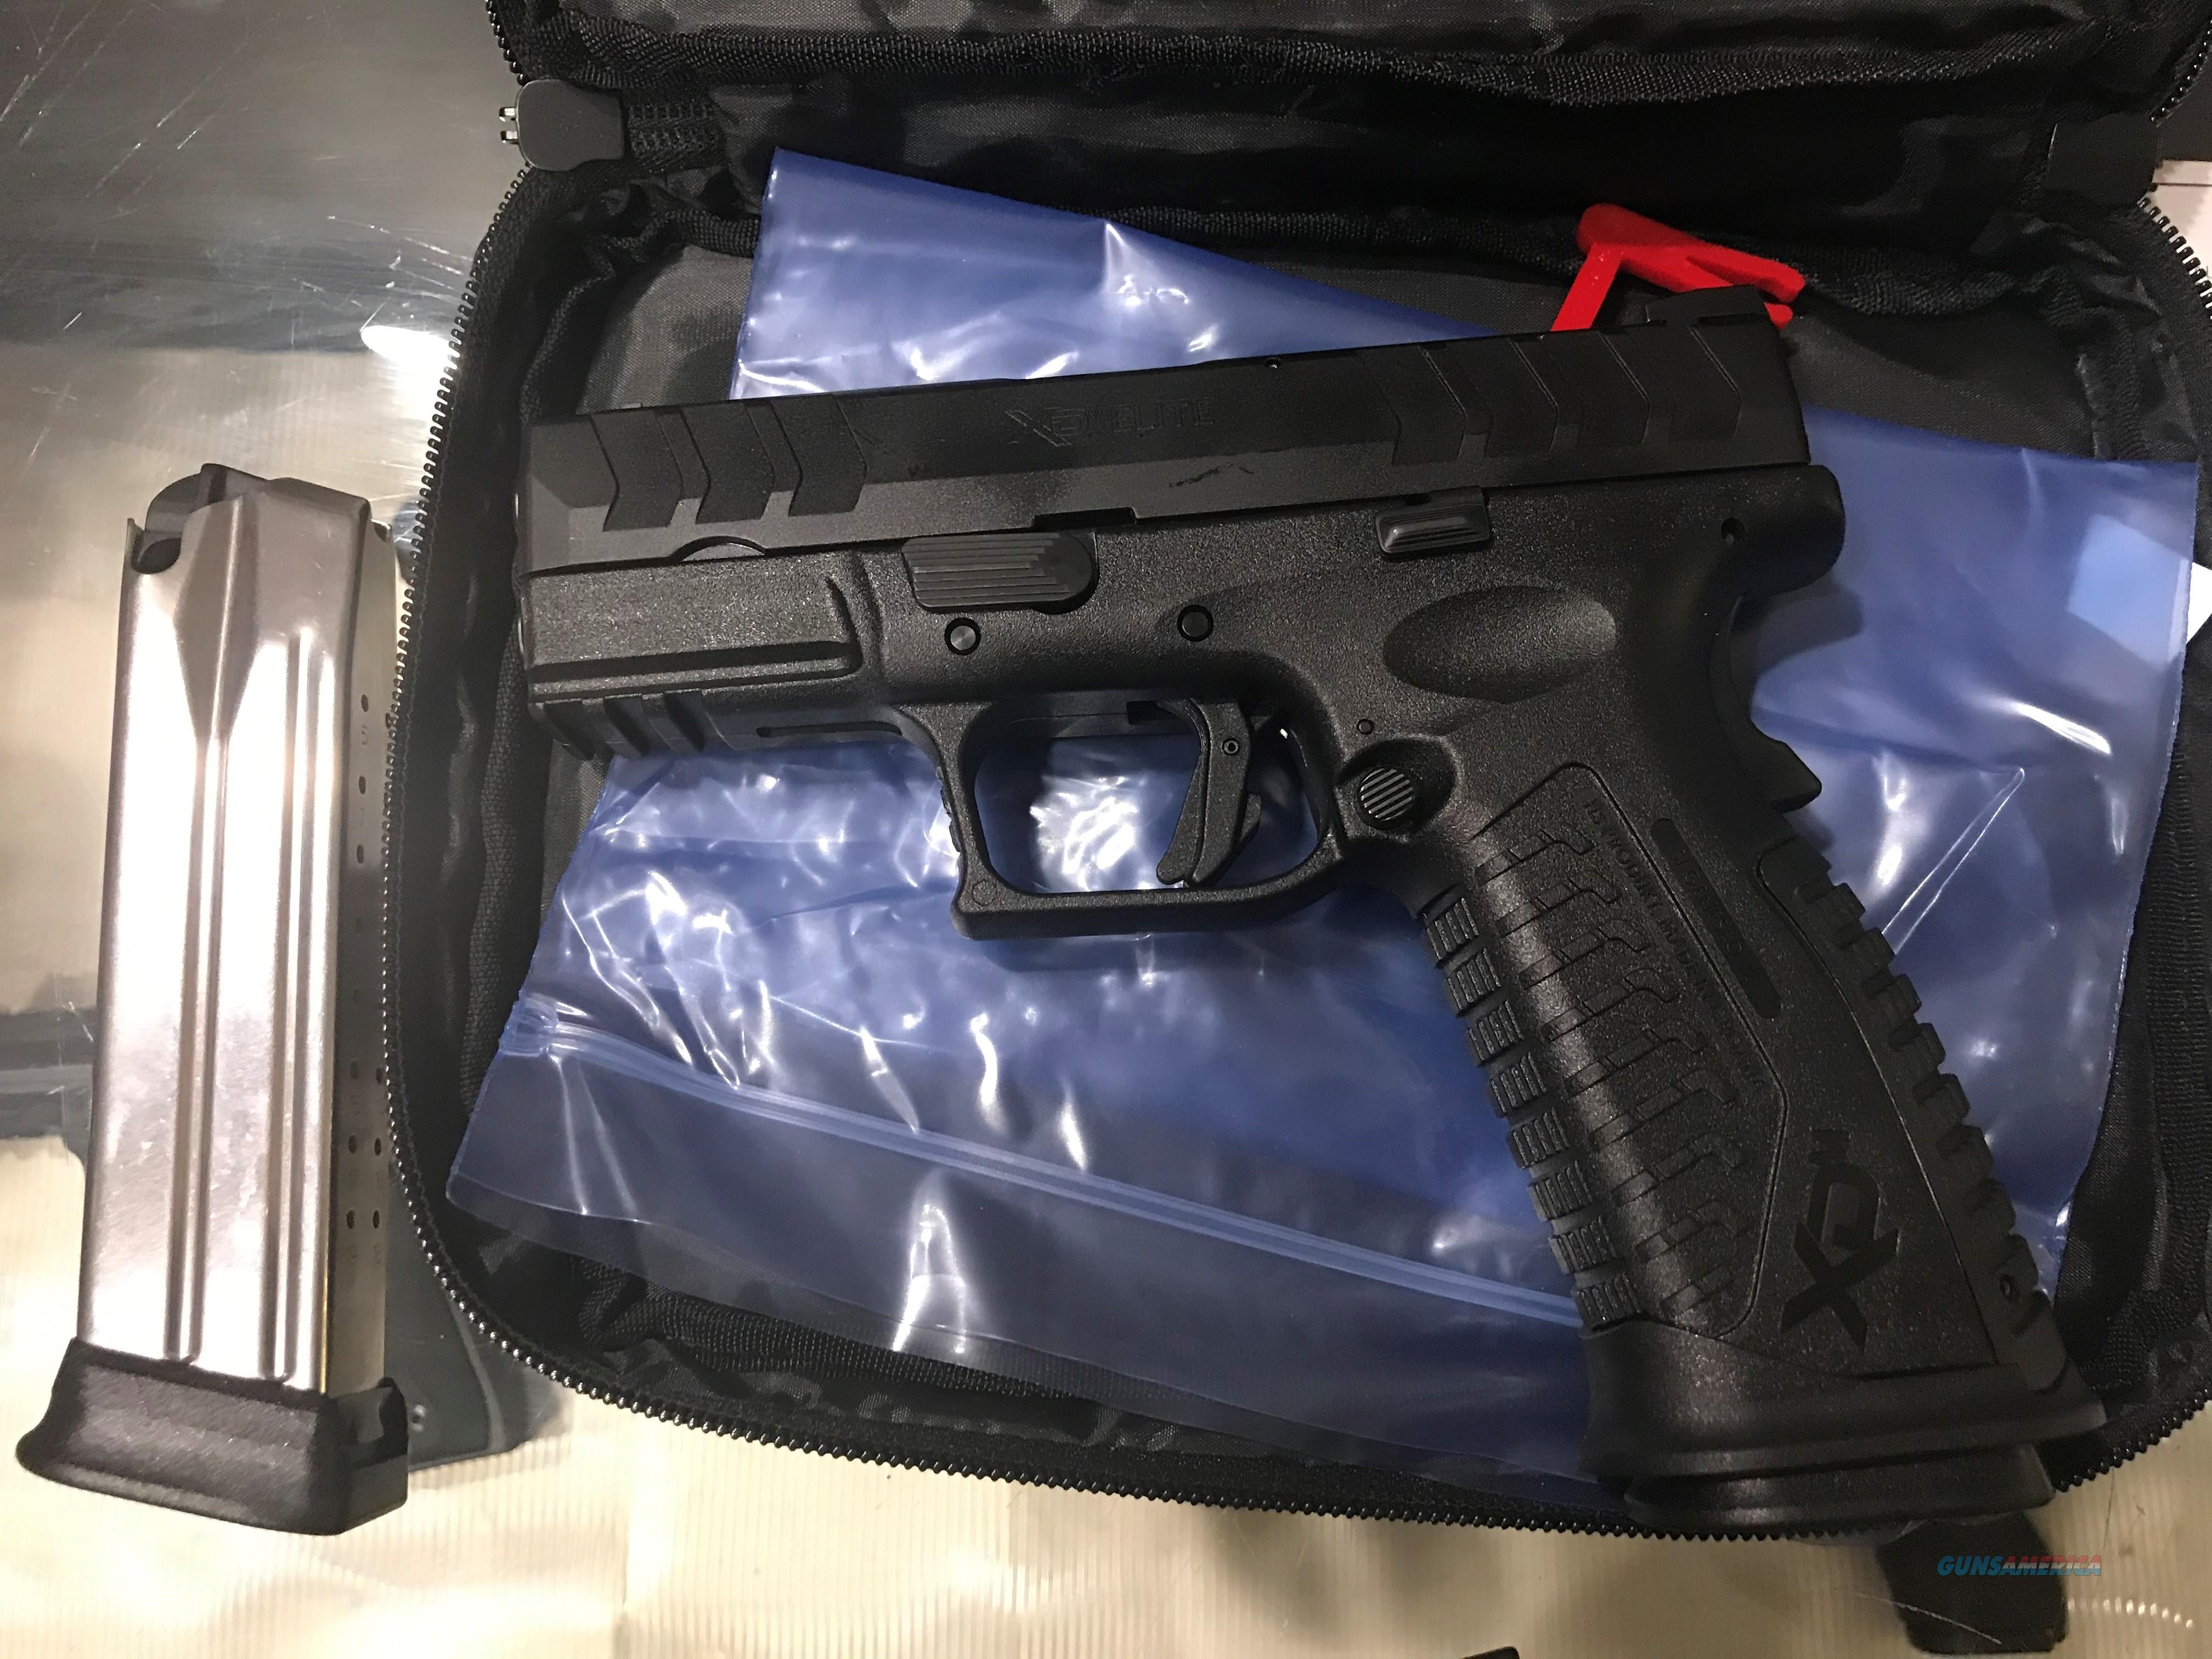 Springfield Armory XDM Elite 9mm model XDME9389BHC with two 20+1 round magazines SA XD-M New in box (no card fees added)  Guns > Pistols > Springfield Armory Pistols > XD-M